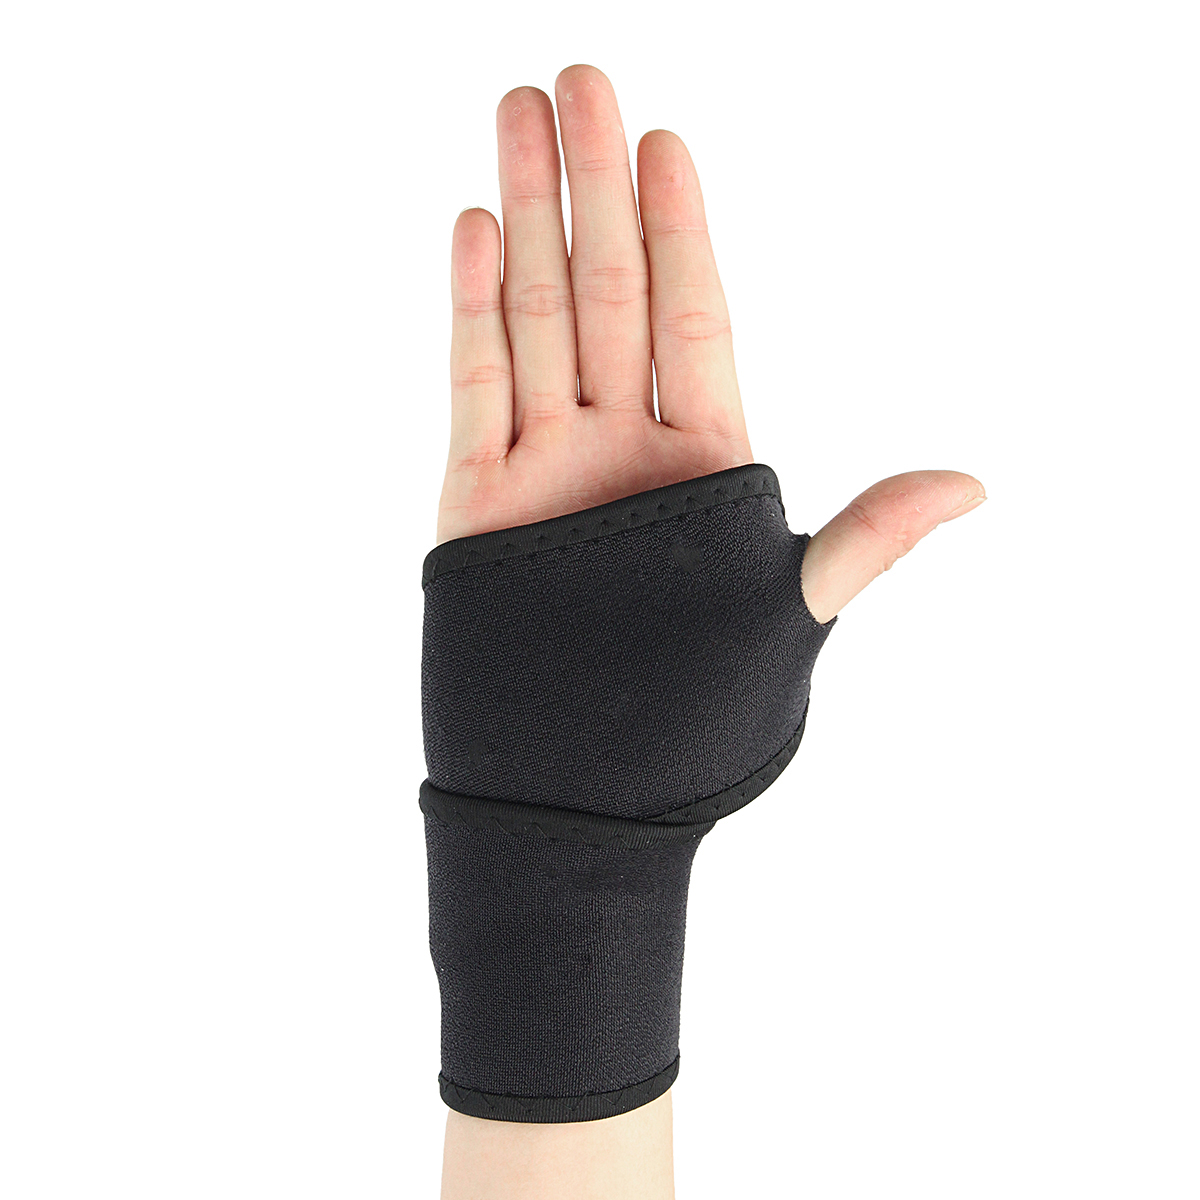 Sports Adjustable Wrist Palm Wrap Guard Band Neoprene Hand Support Gym Sprain Strain Strap